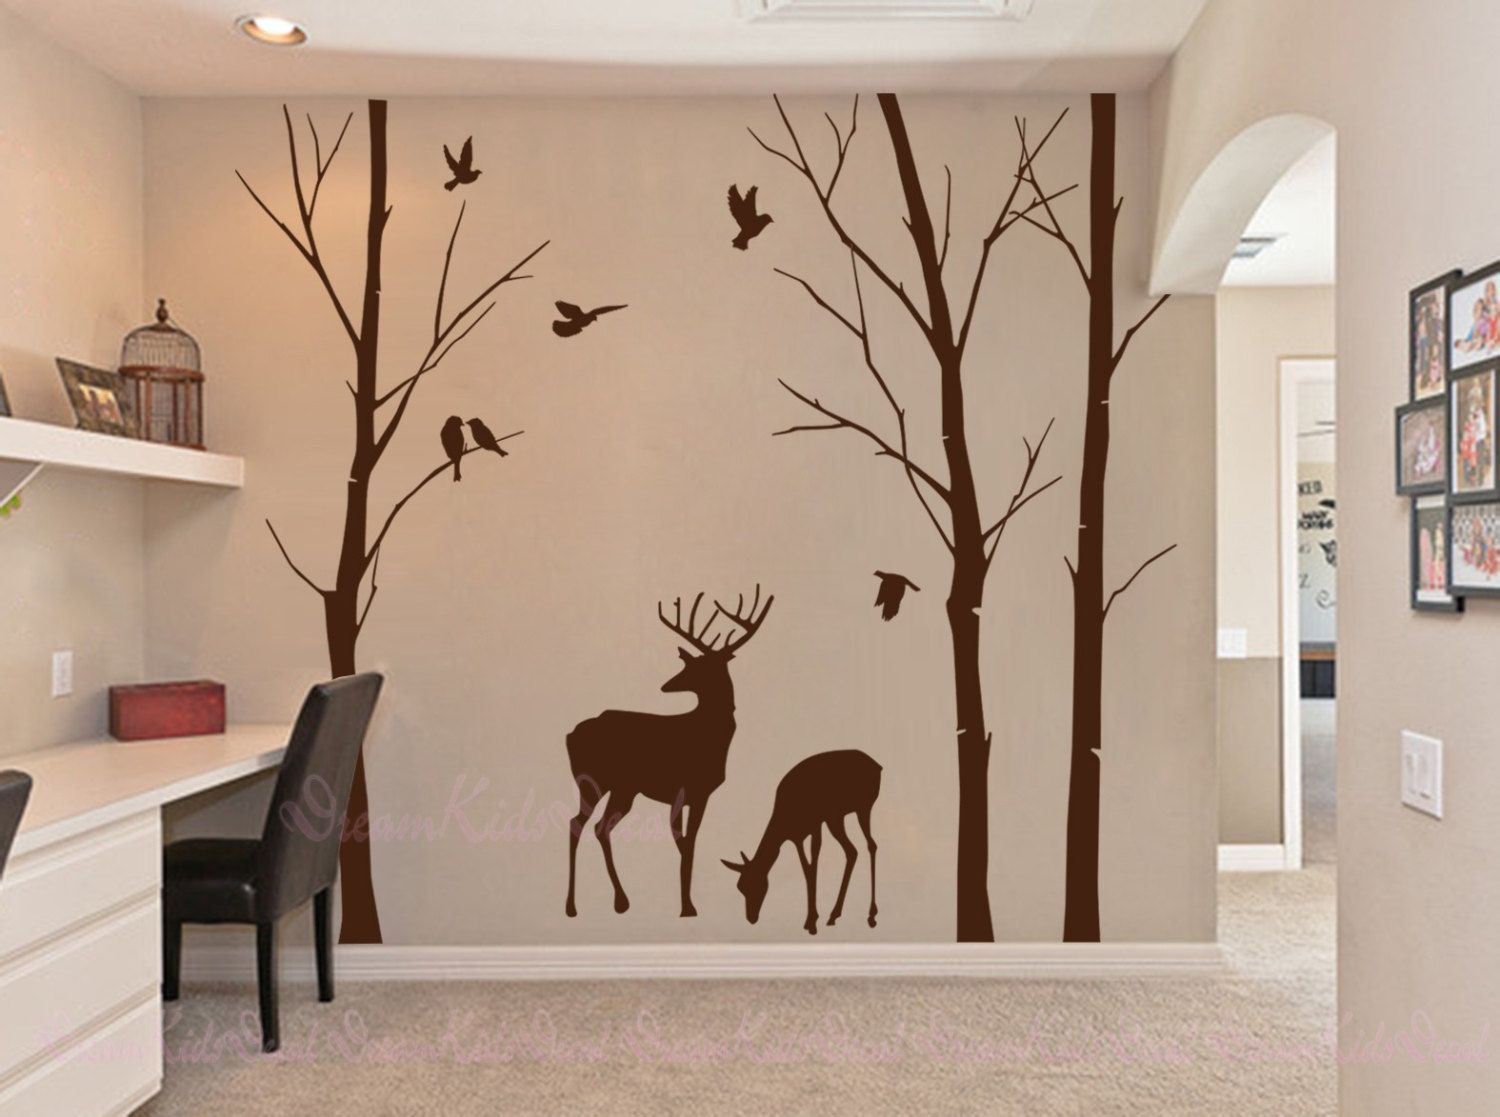 Best 25 baby wall stickers ideas on pinterest nursery wall birch trees decals deer wall decals nature wall by dreamkidsdecal 7500 amipublicfo Gallery